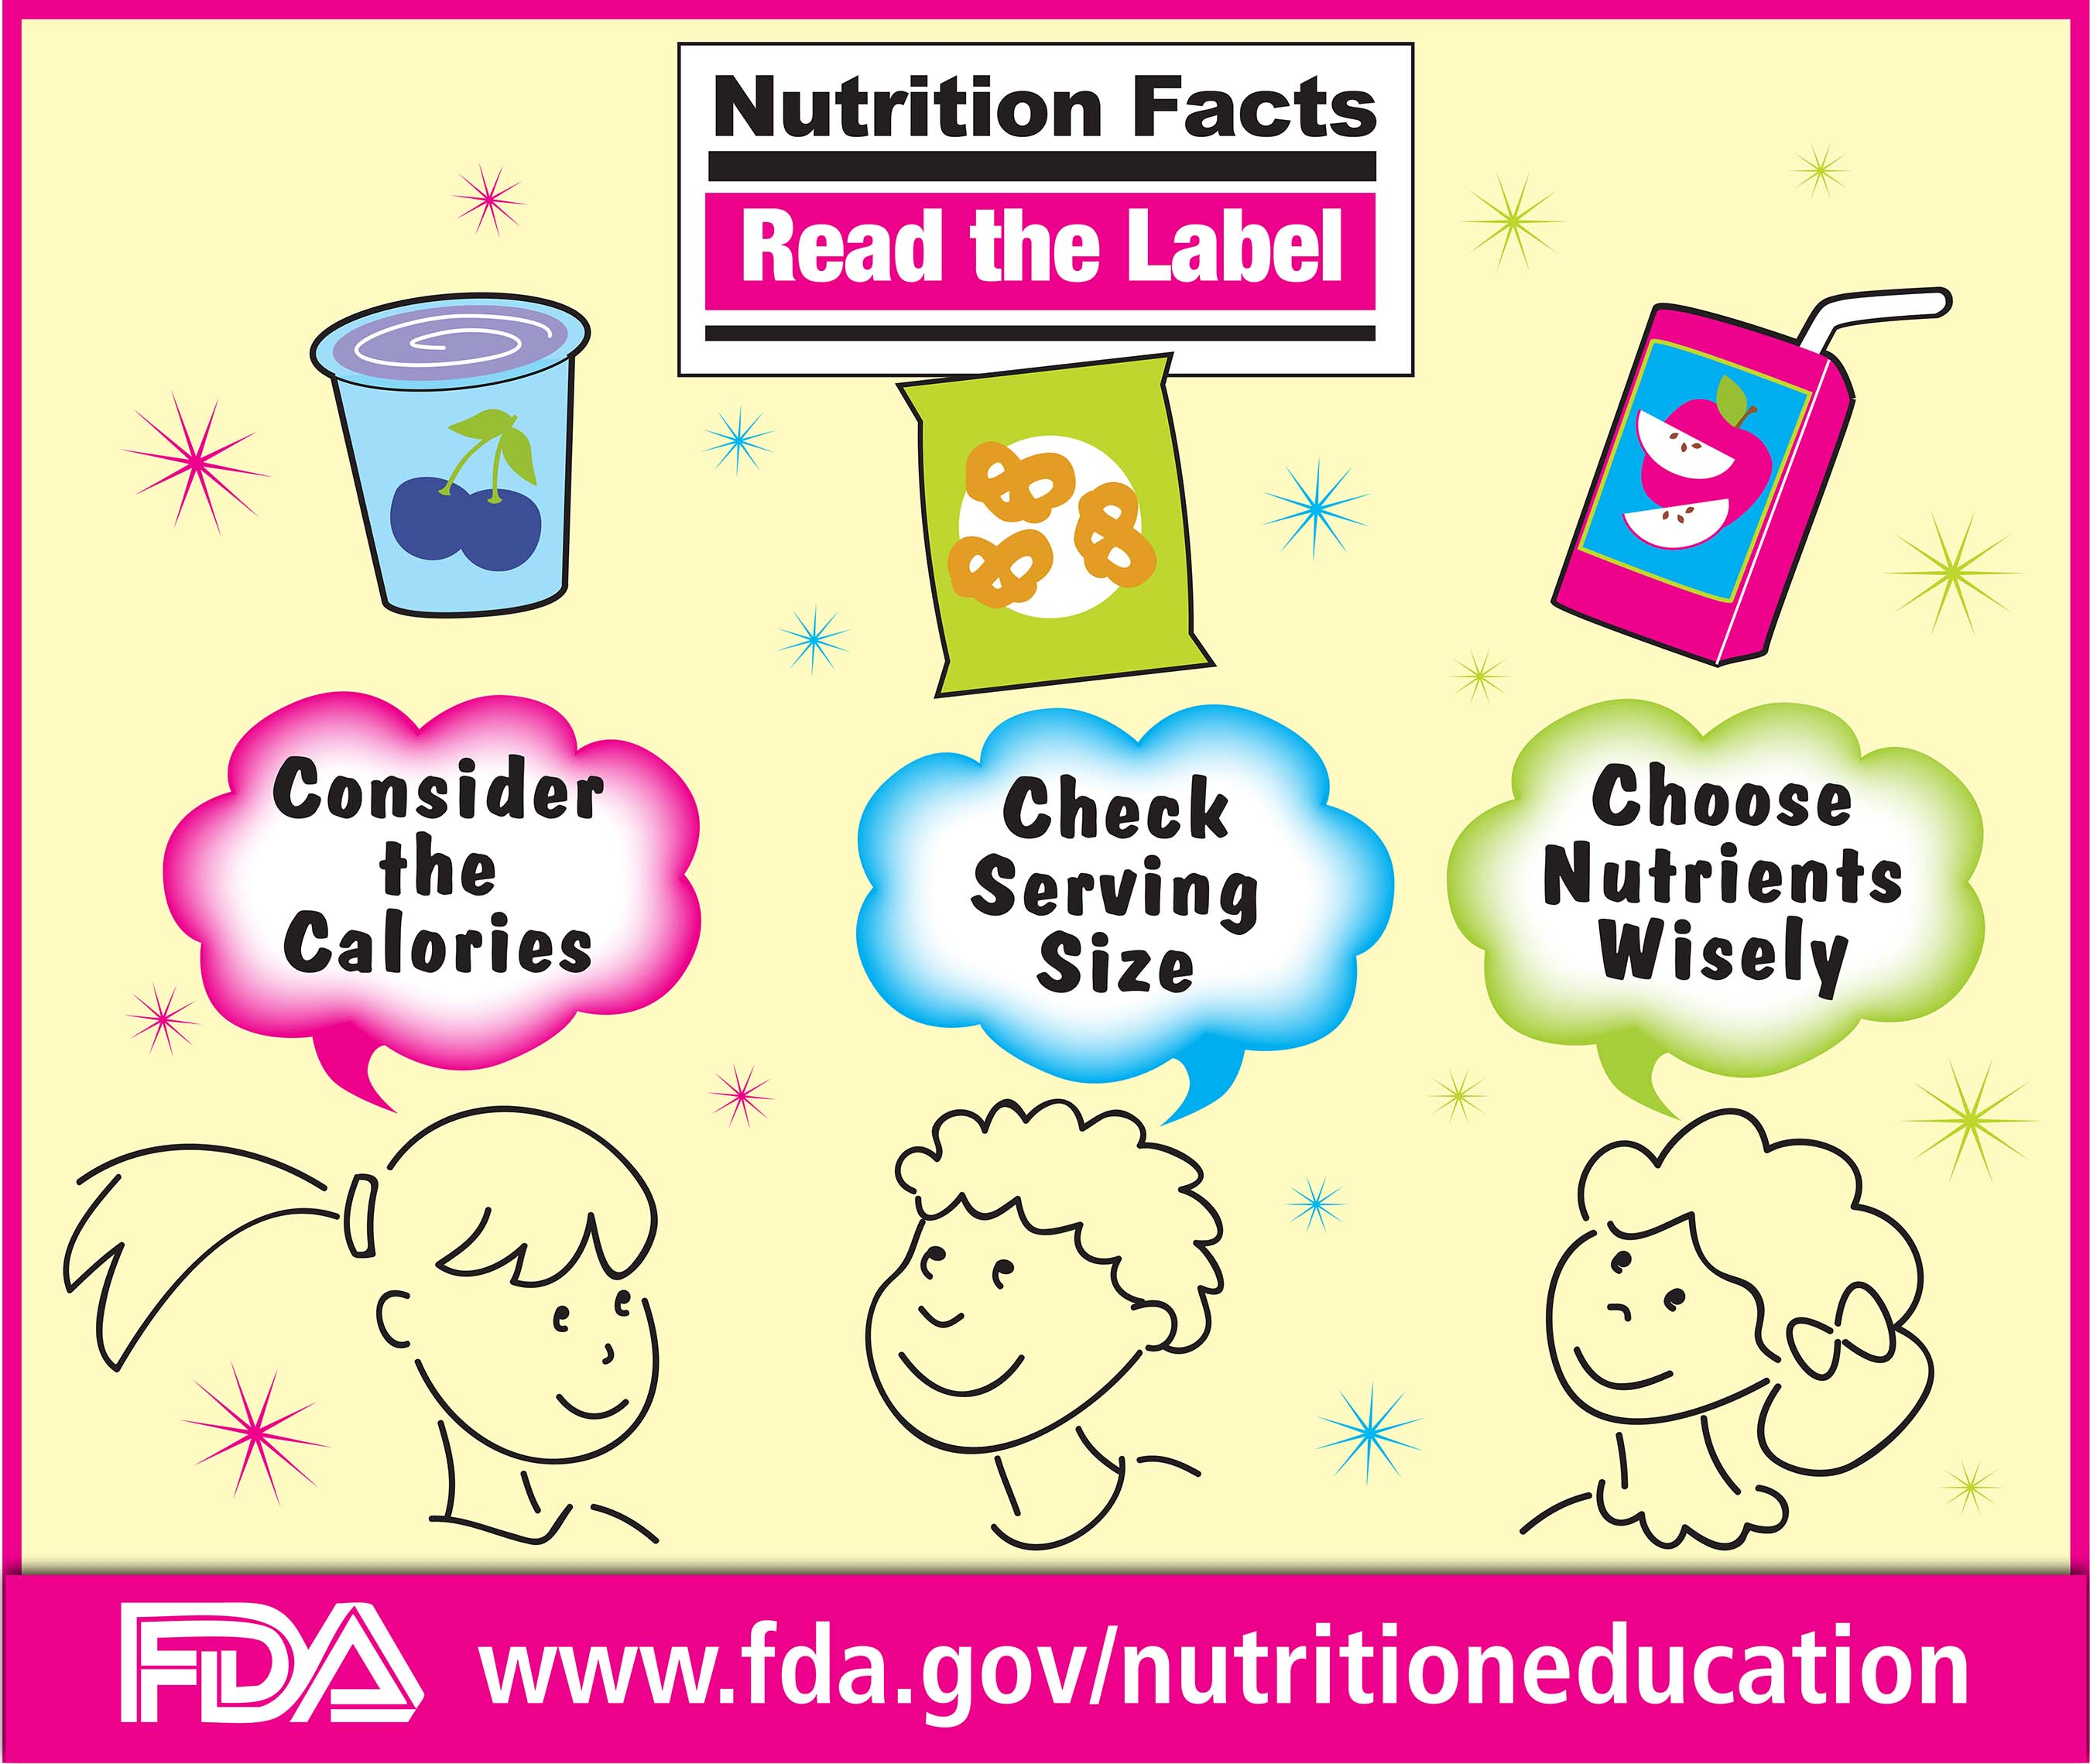 http://www.multivu.com/players/English/7106353-fda-national-childhood-obesity-month/gallery/image/8e9d9df2-5ad6-4f3b-a45c-62744622c92c.HR.jpg